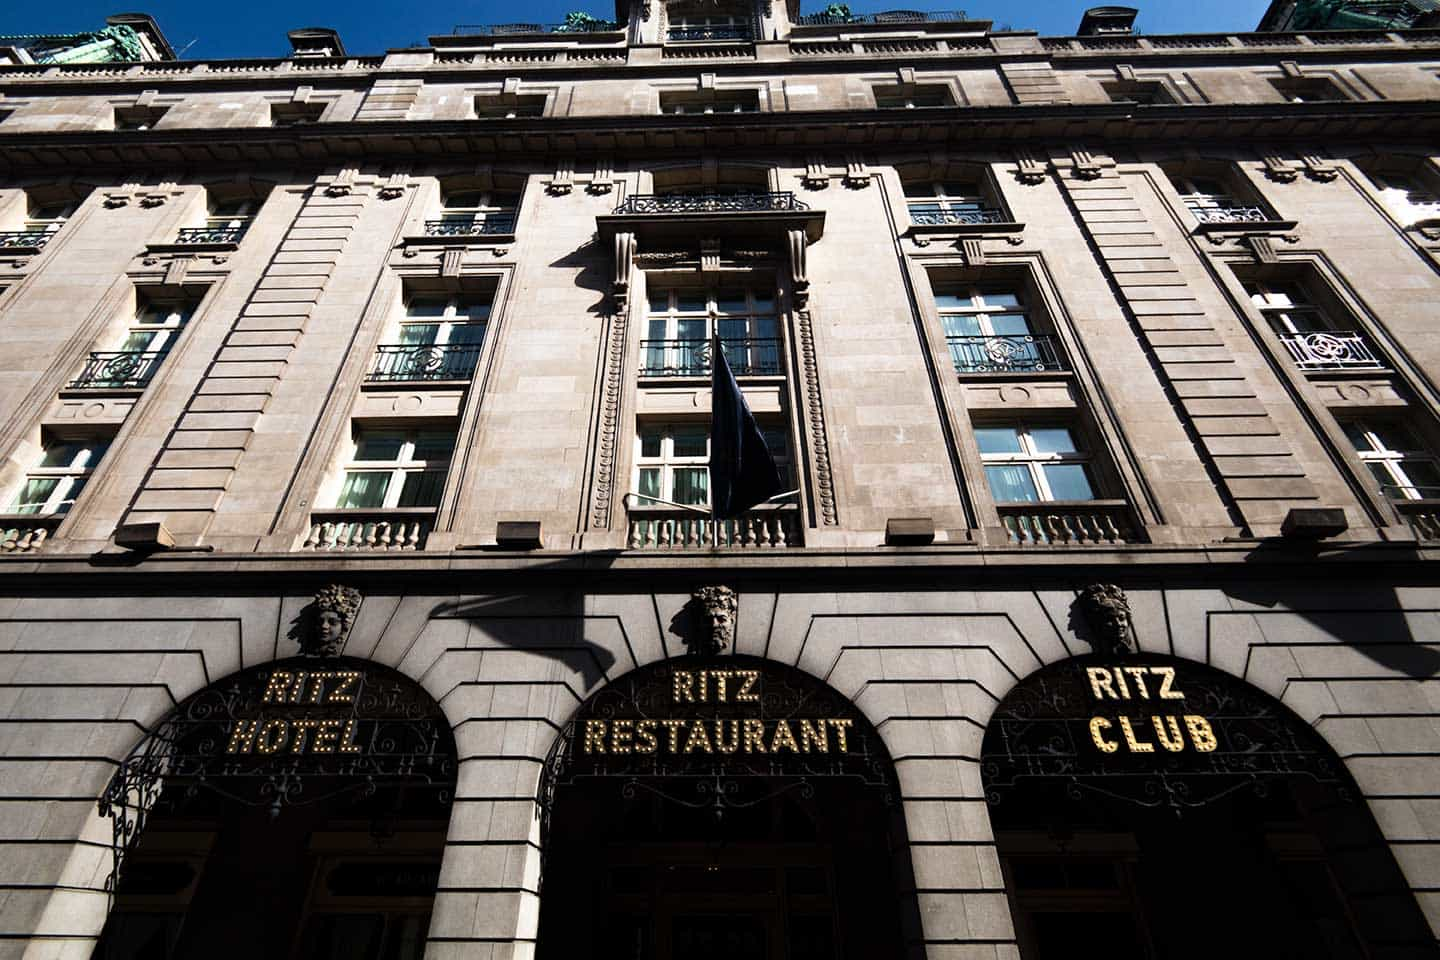 Image of the Ritz Hotel in Piccadilly, London